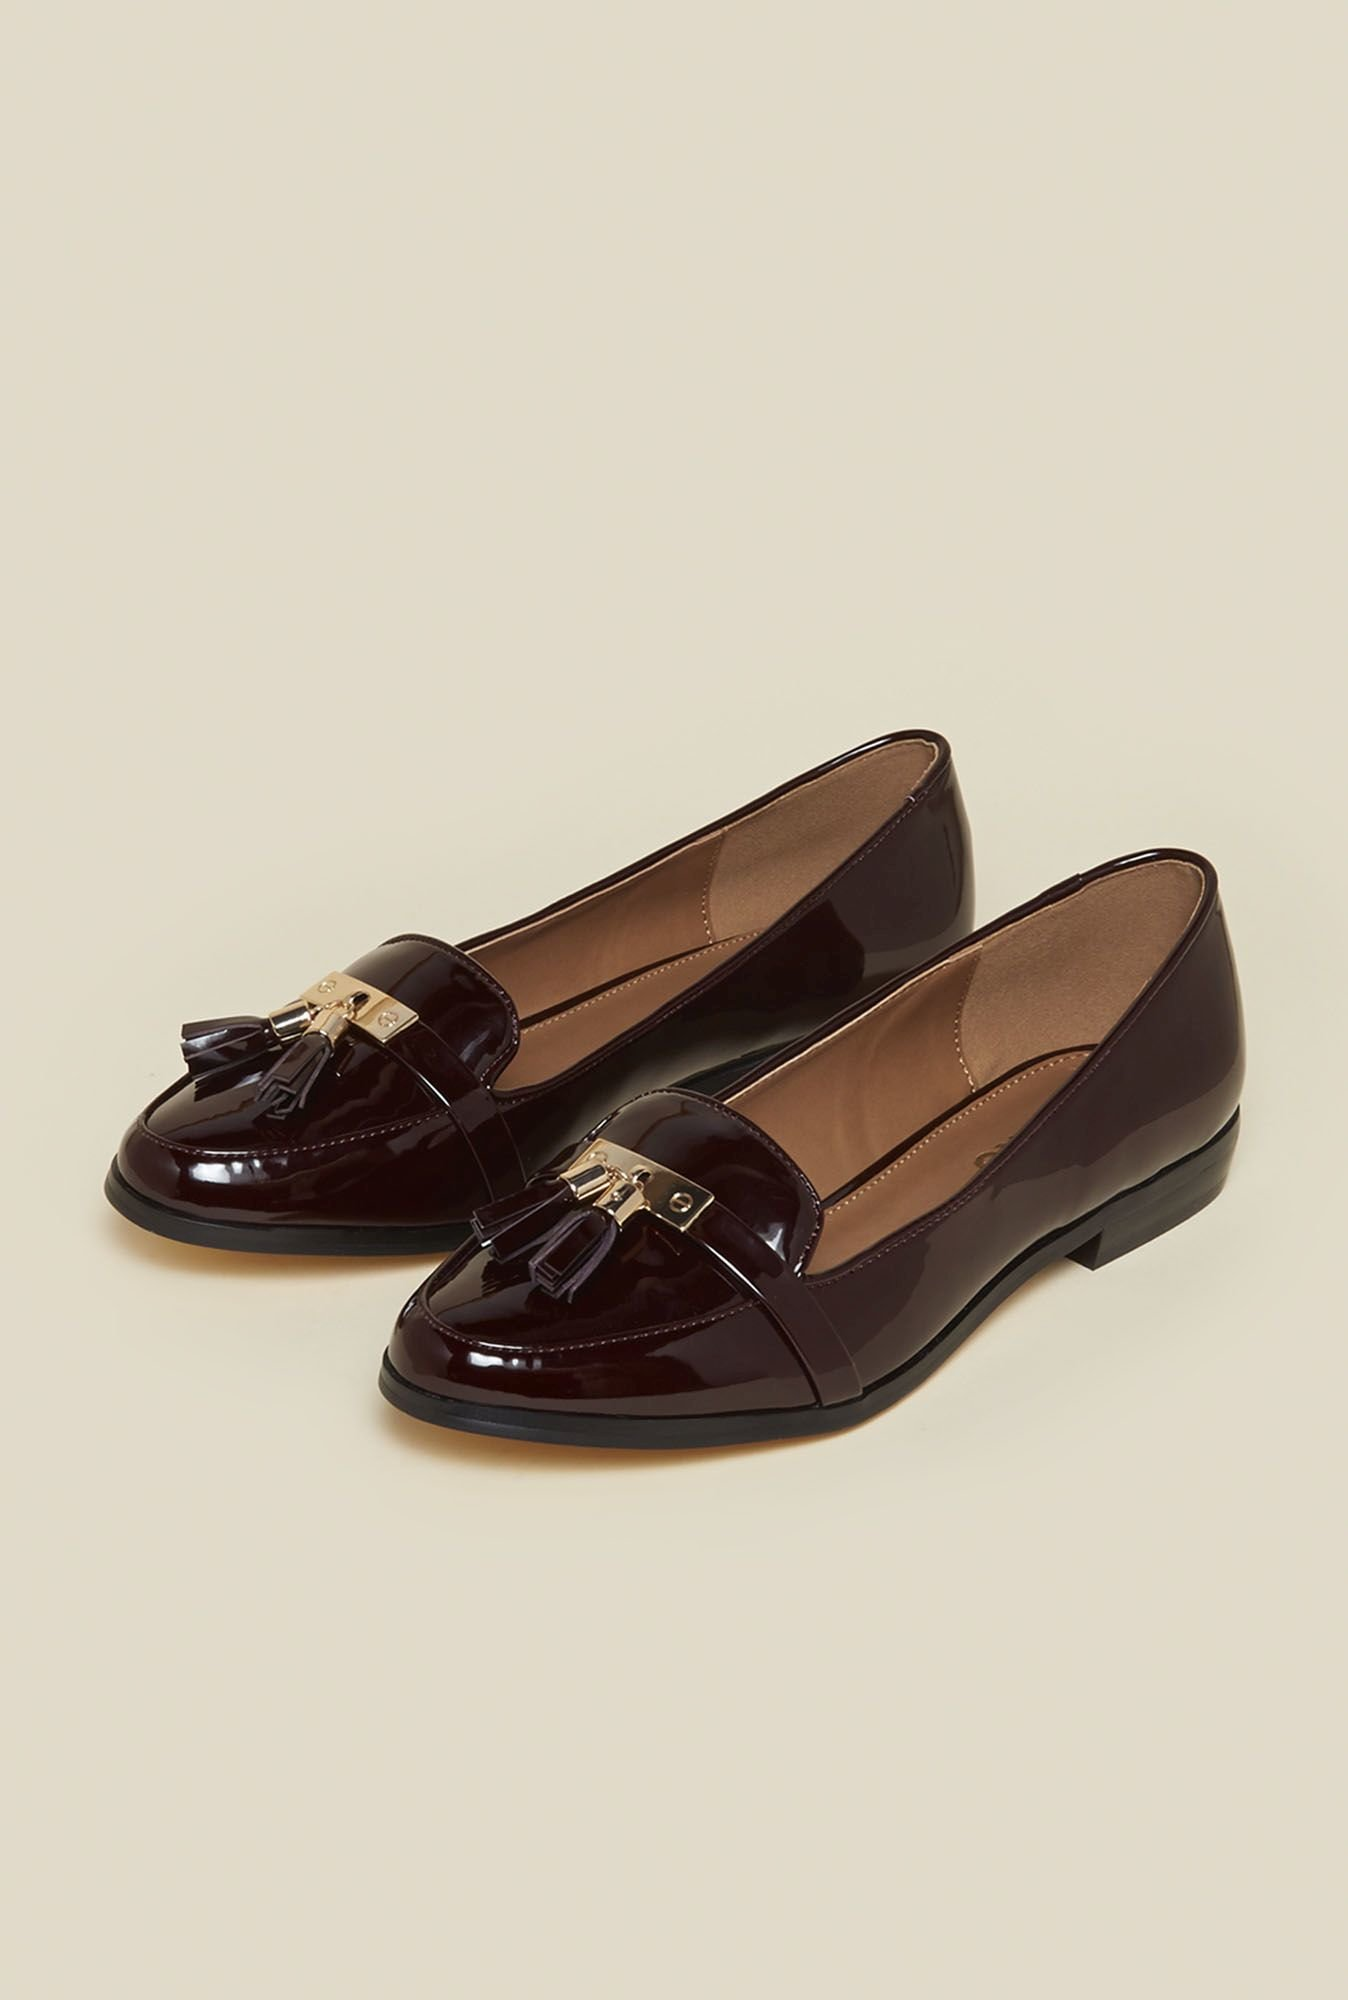 Miss KG by Kurt Geiger Nadia Wine Moccasins